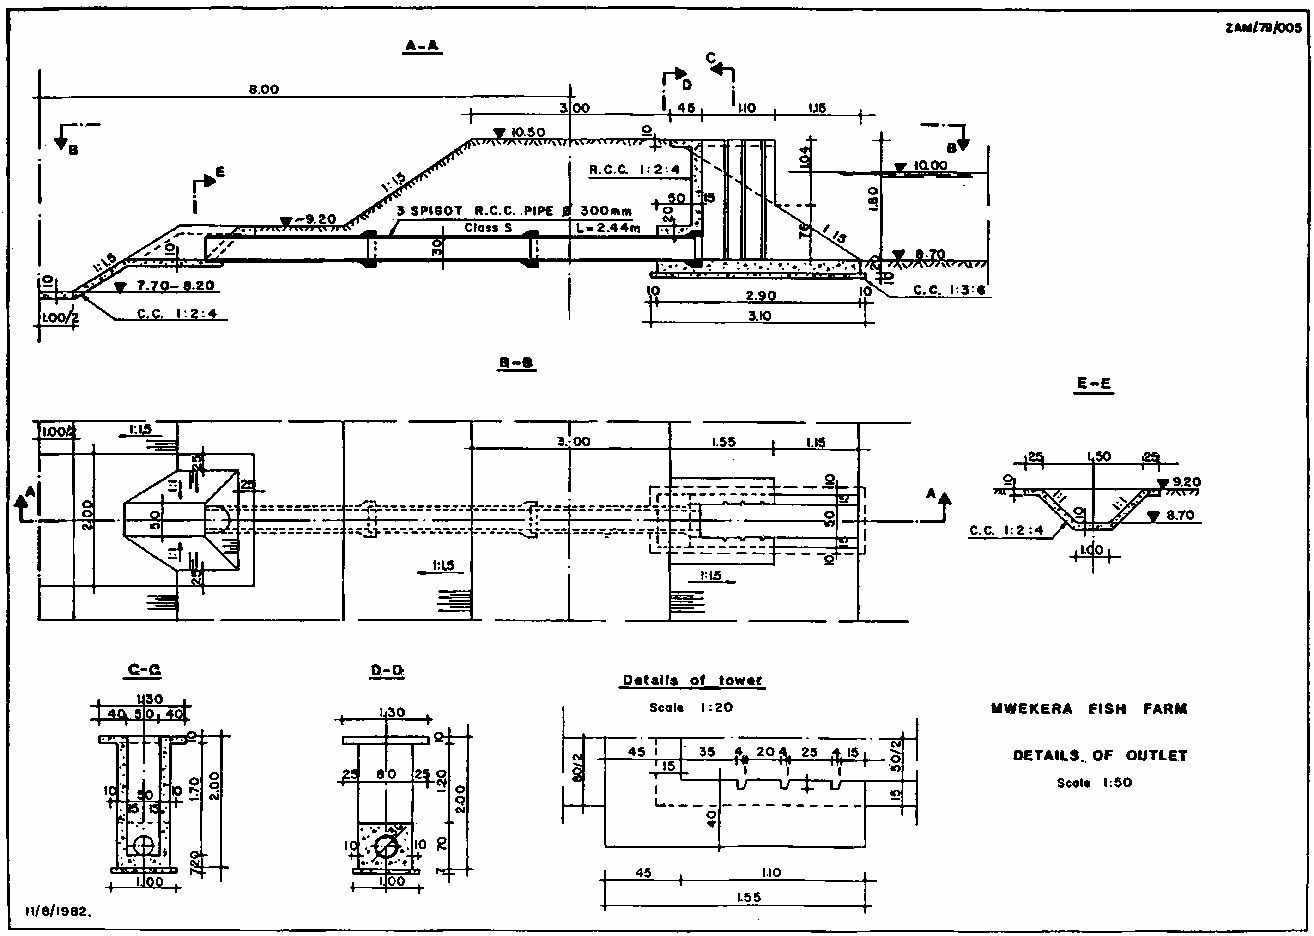 Diploma Civil Engineering Drawing Book Pdf Inspirational Chapter 7 Preparation Of Plans And Cost Estimates In 2020 Drawing Book Pdf Building Drawing Civil Engineering